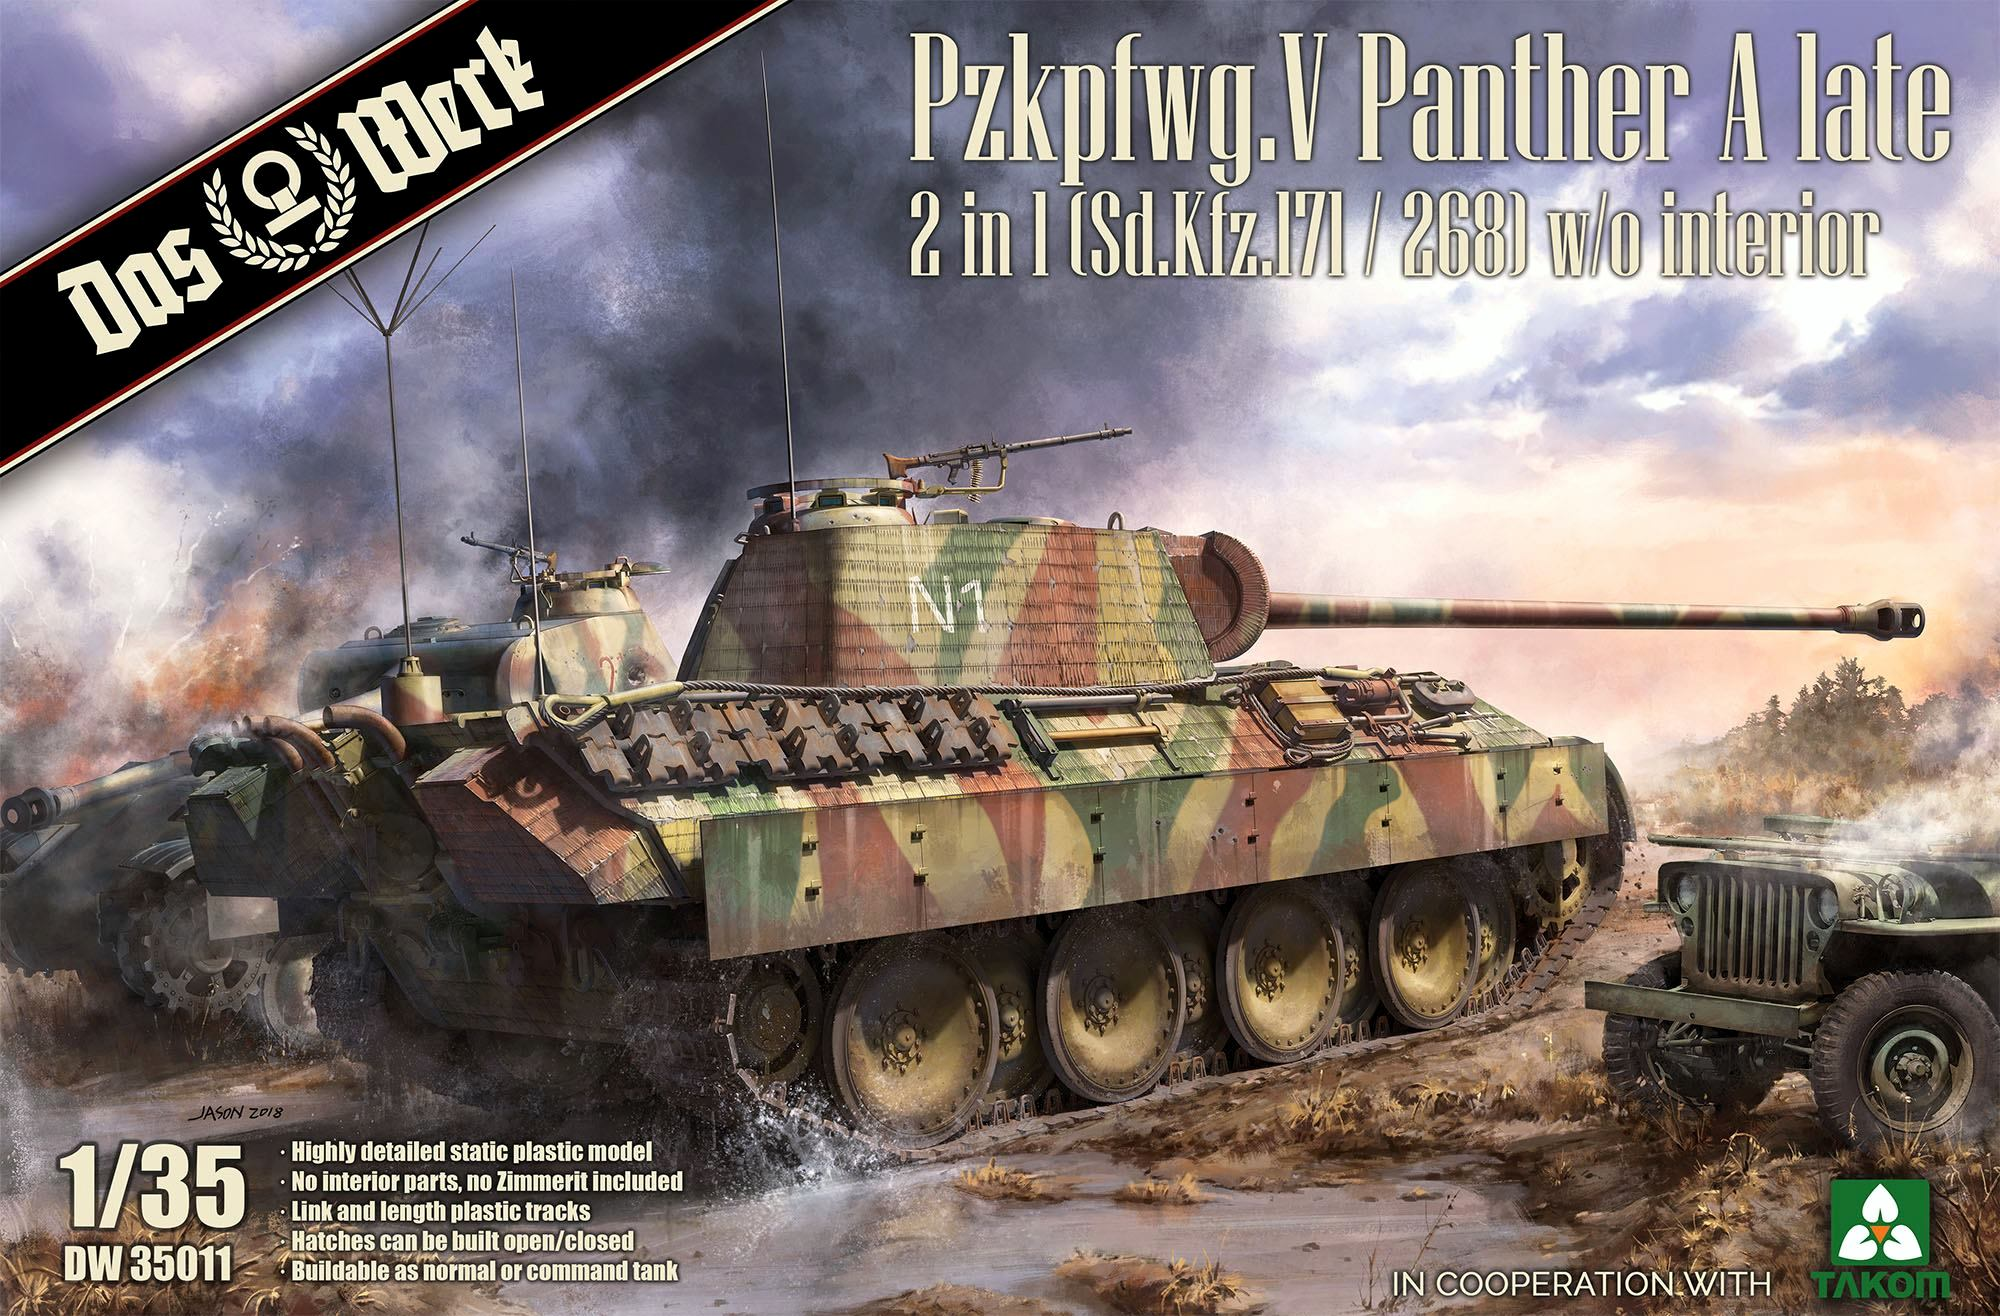 Pzkpfwg. V Panther A late - 2 in 1 (Sd.Kfz.171/268)